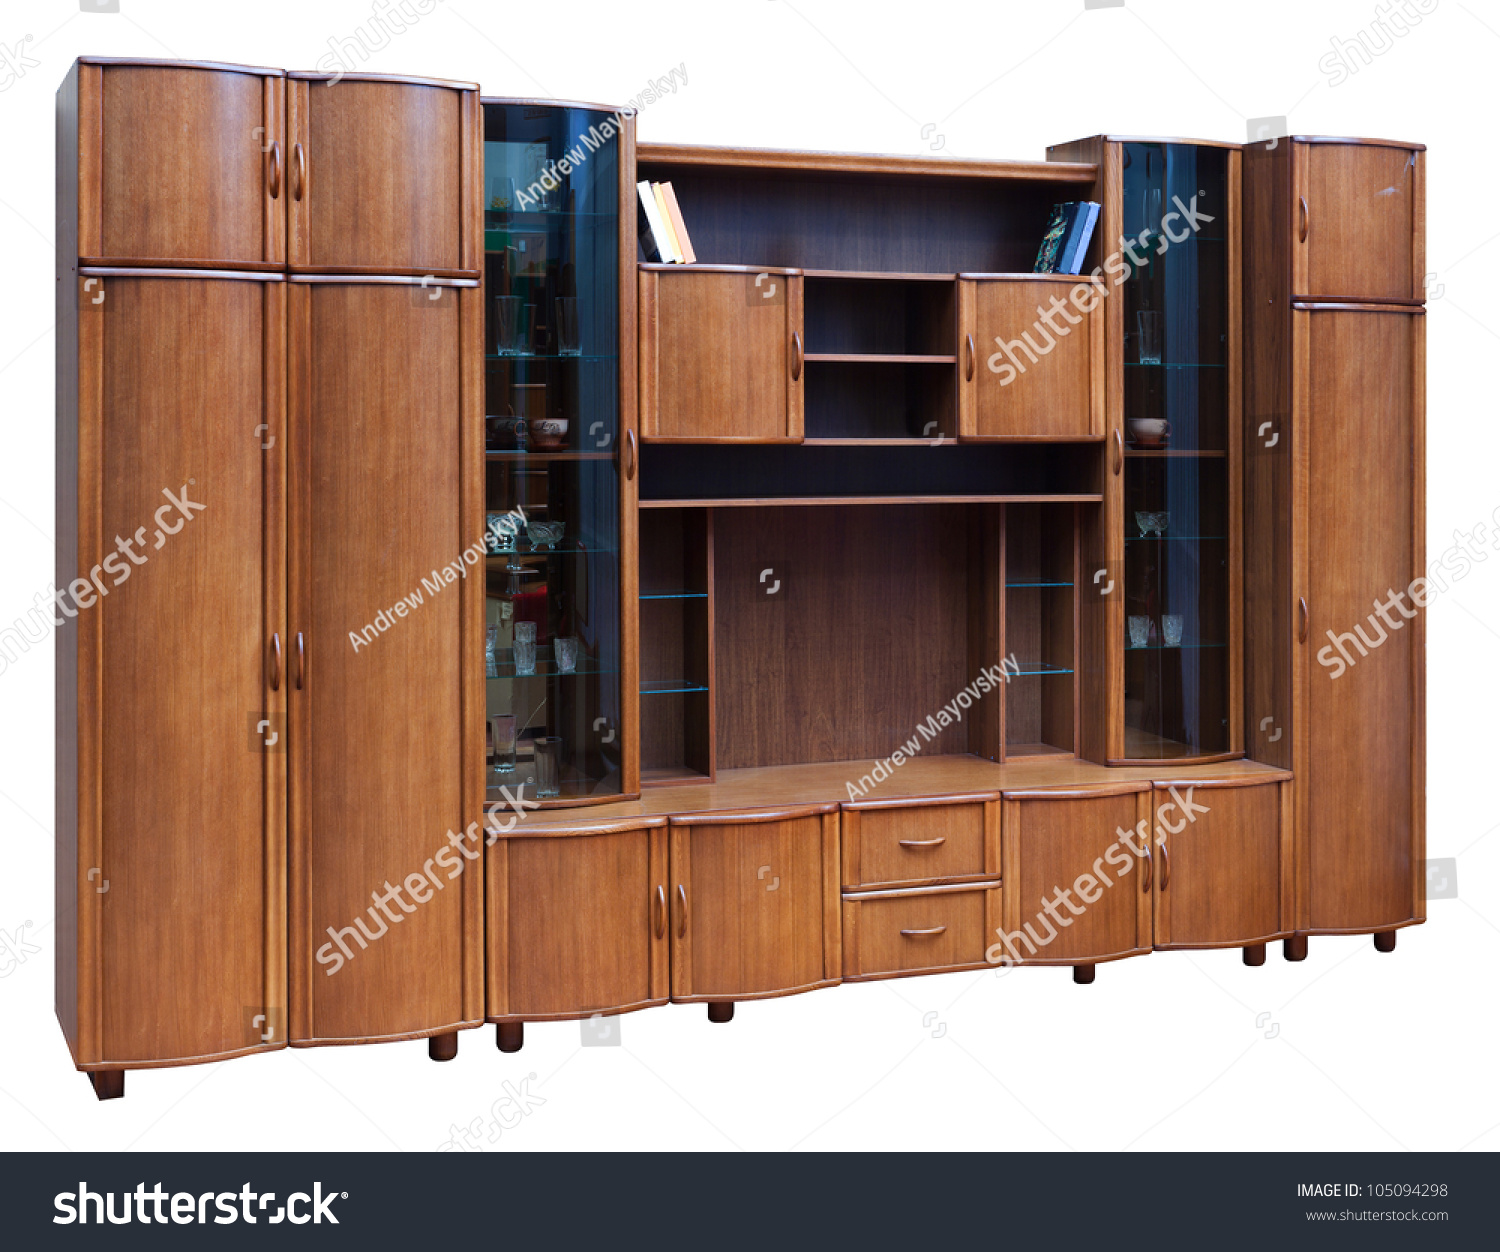 Wooden Cupboard With Glass Doors Isolated On White Stock Photo